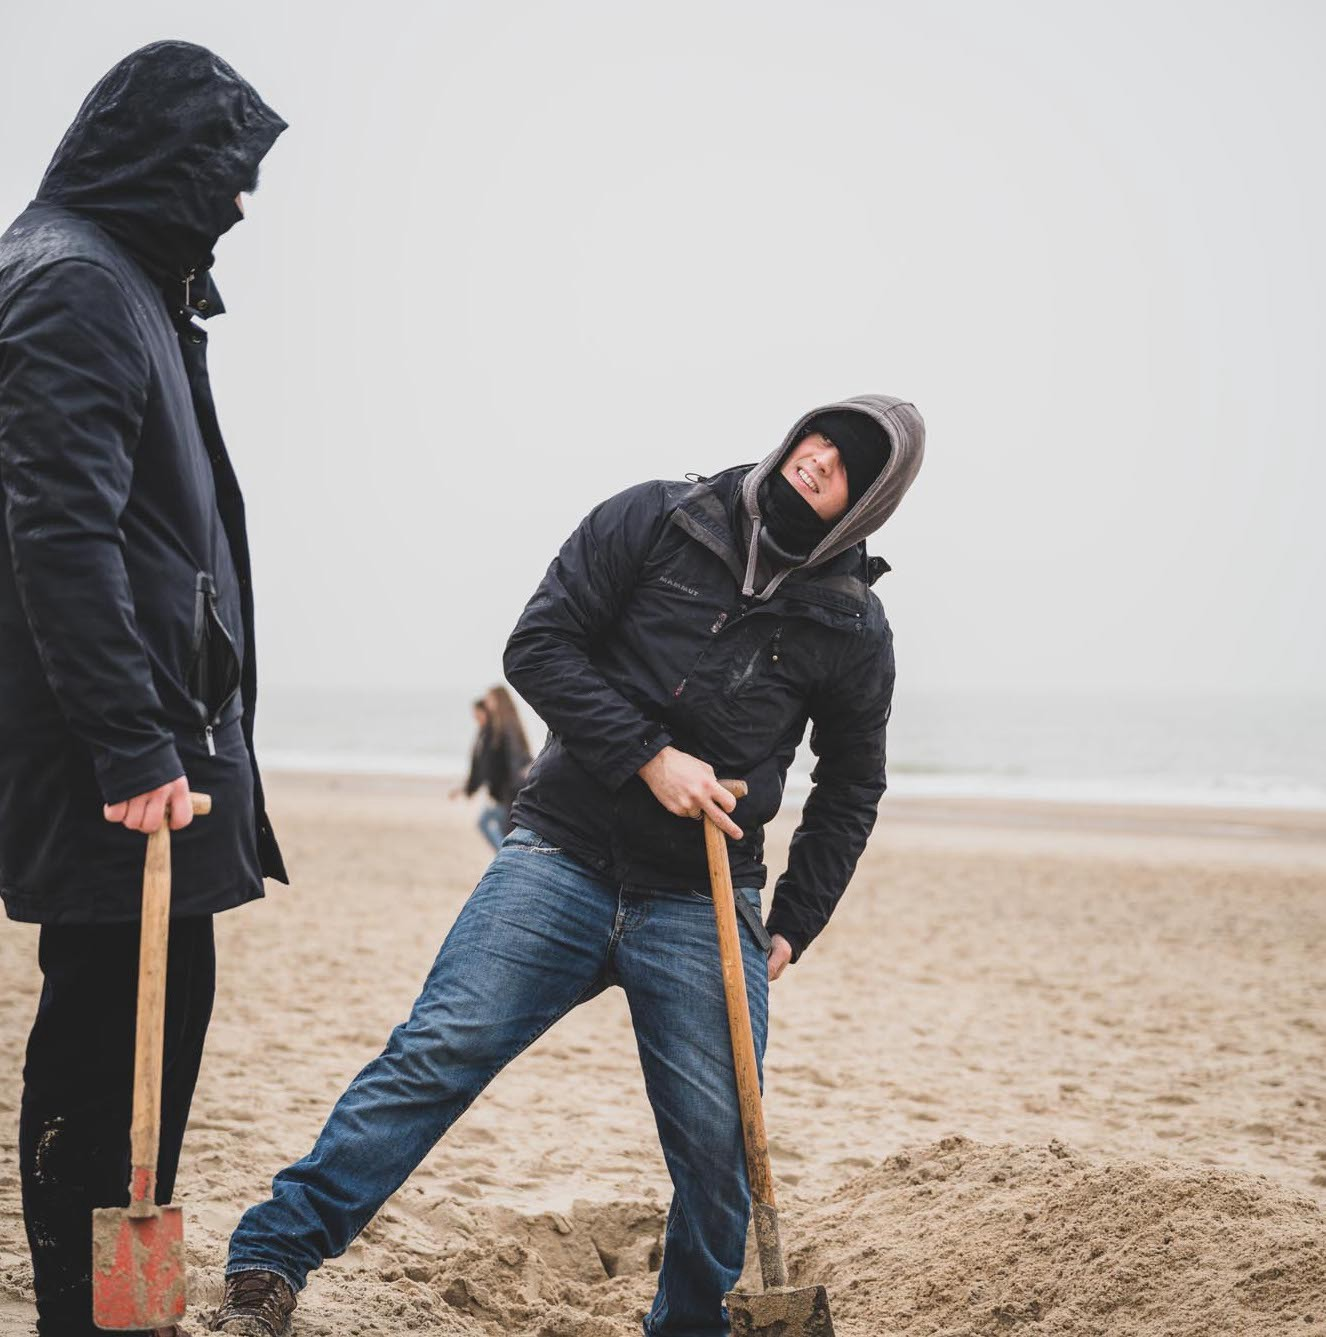 Jonas and Hannes building a sandcastle in cold weather